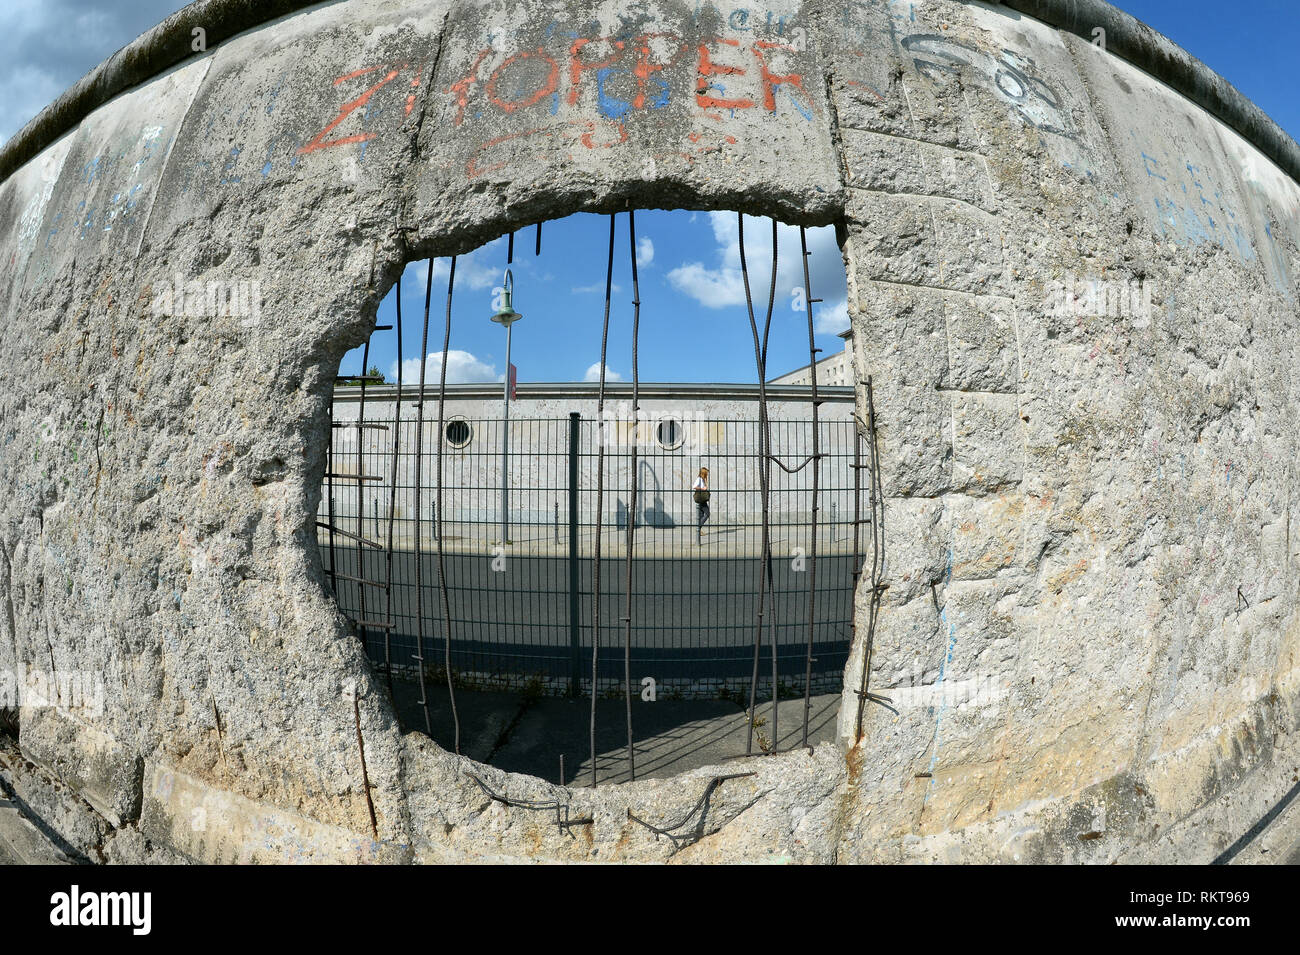 Berlin Wall, part of the documentation centre Topography of Terror on Niederkirchnerstrasse, Europe, Germany, Berlin. - Stock Image